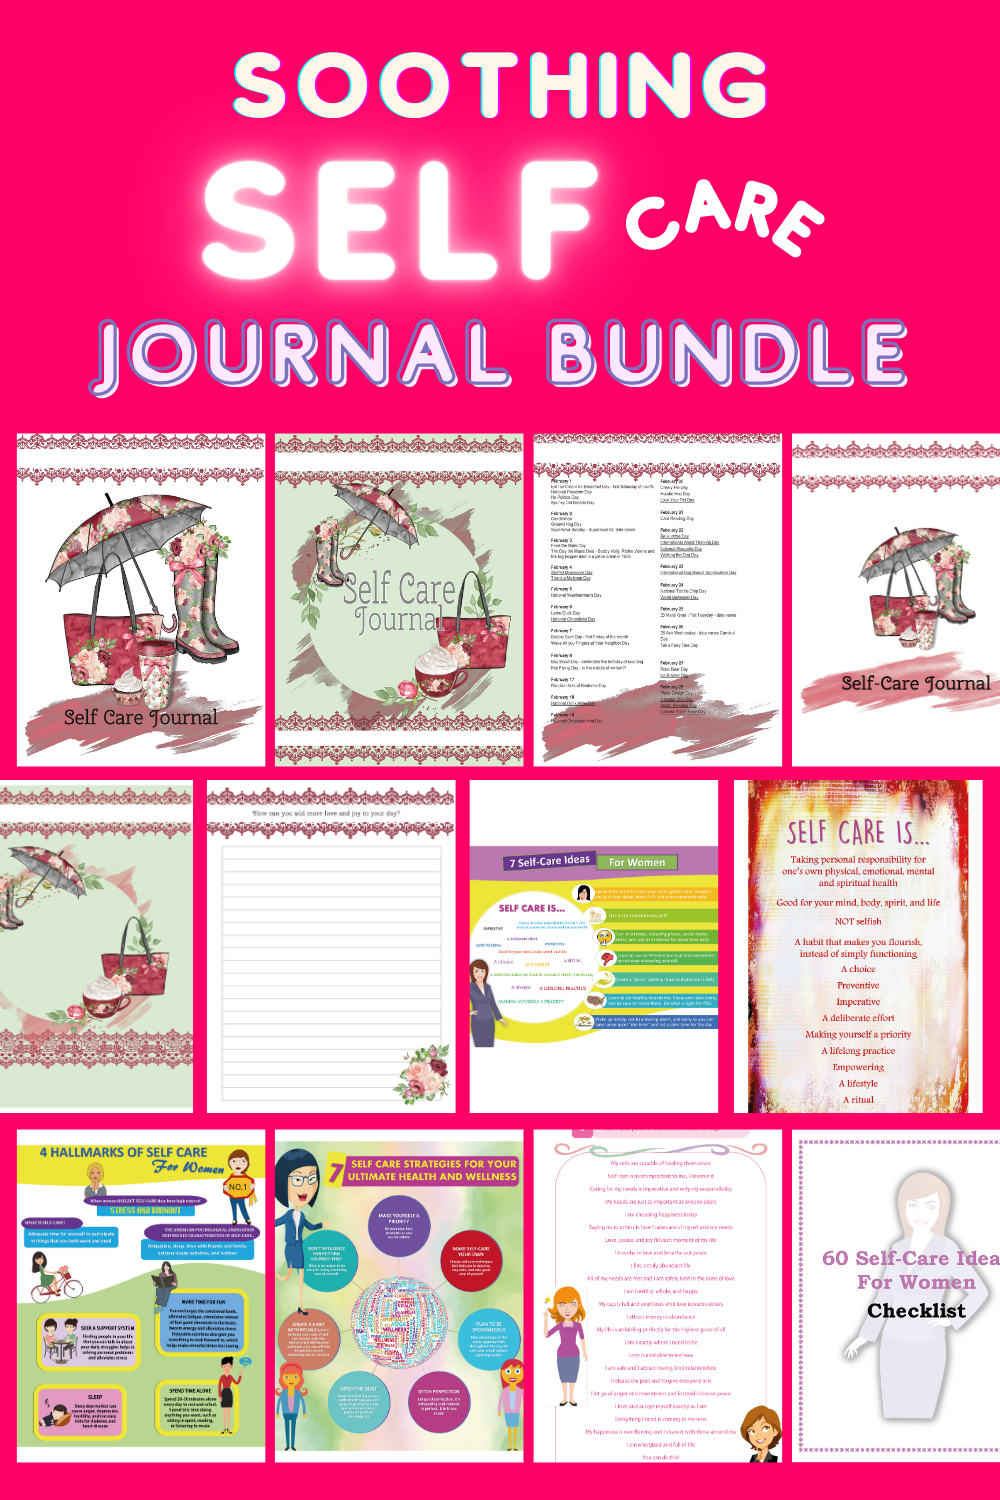 Soothing Self-Care Journal Bundle